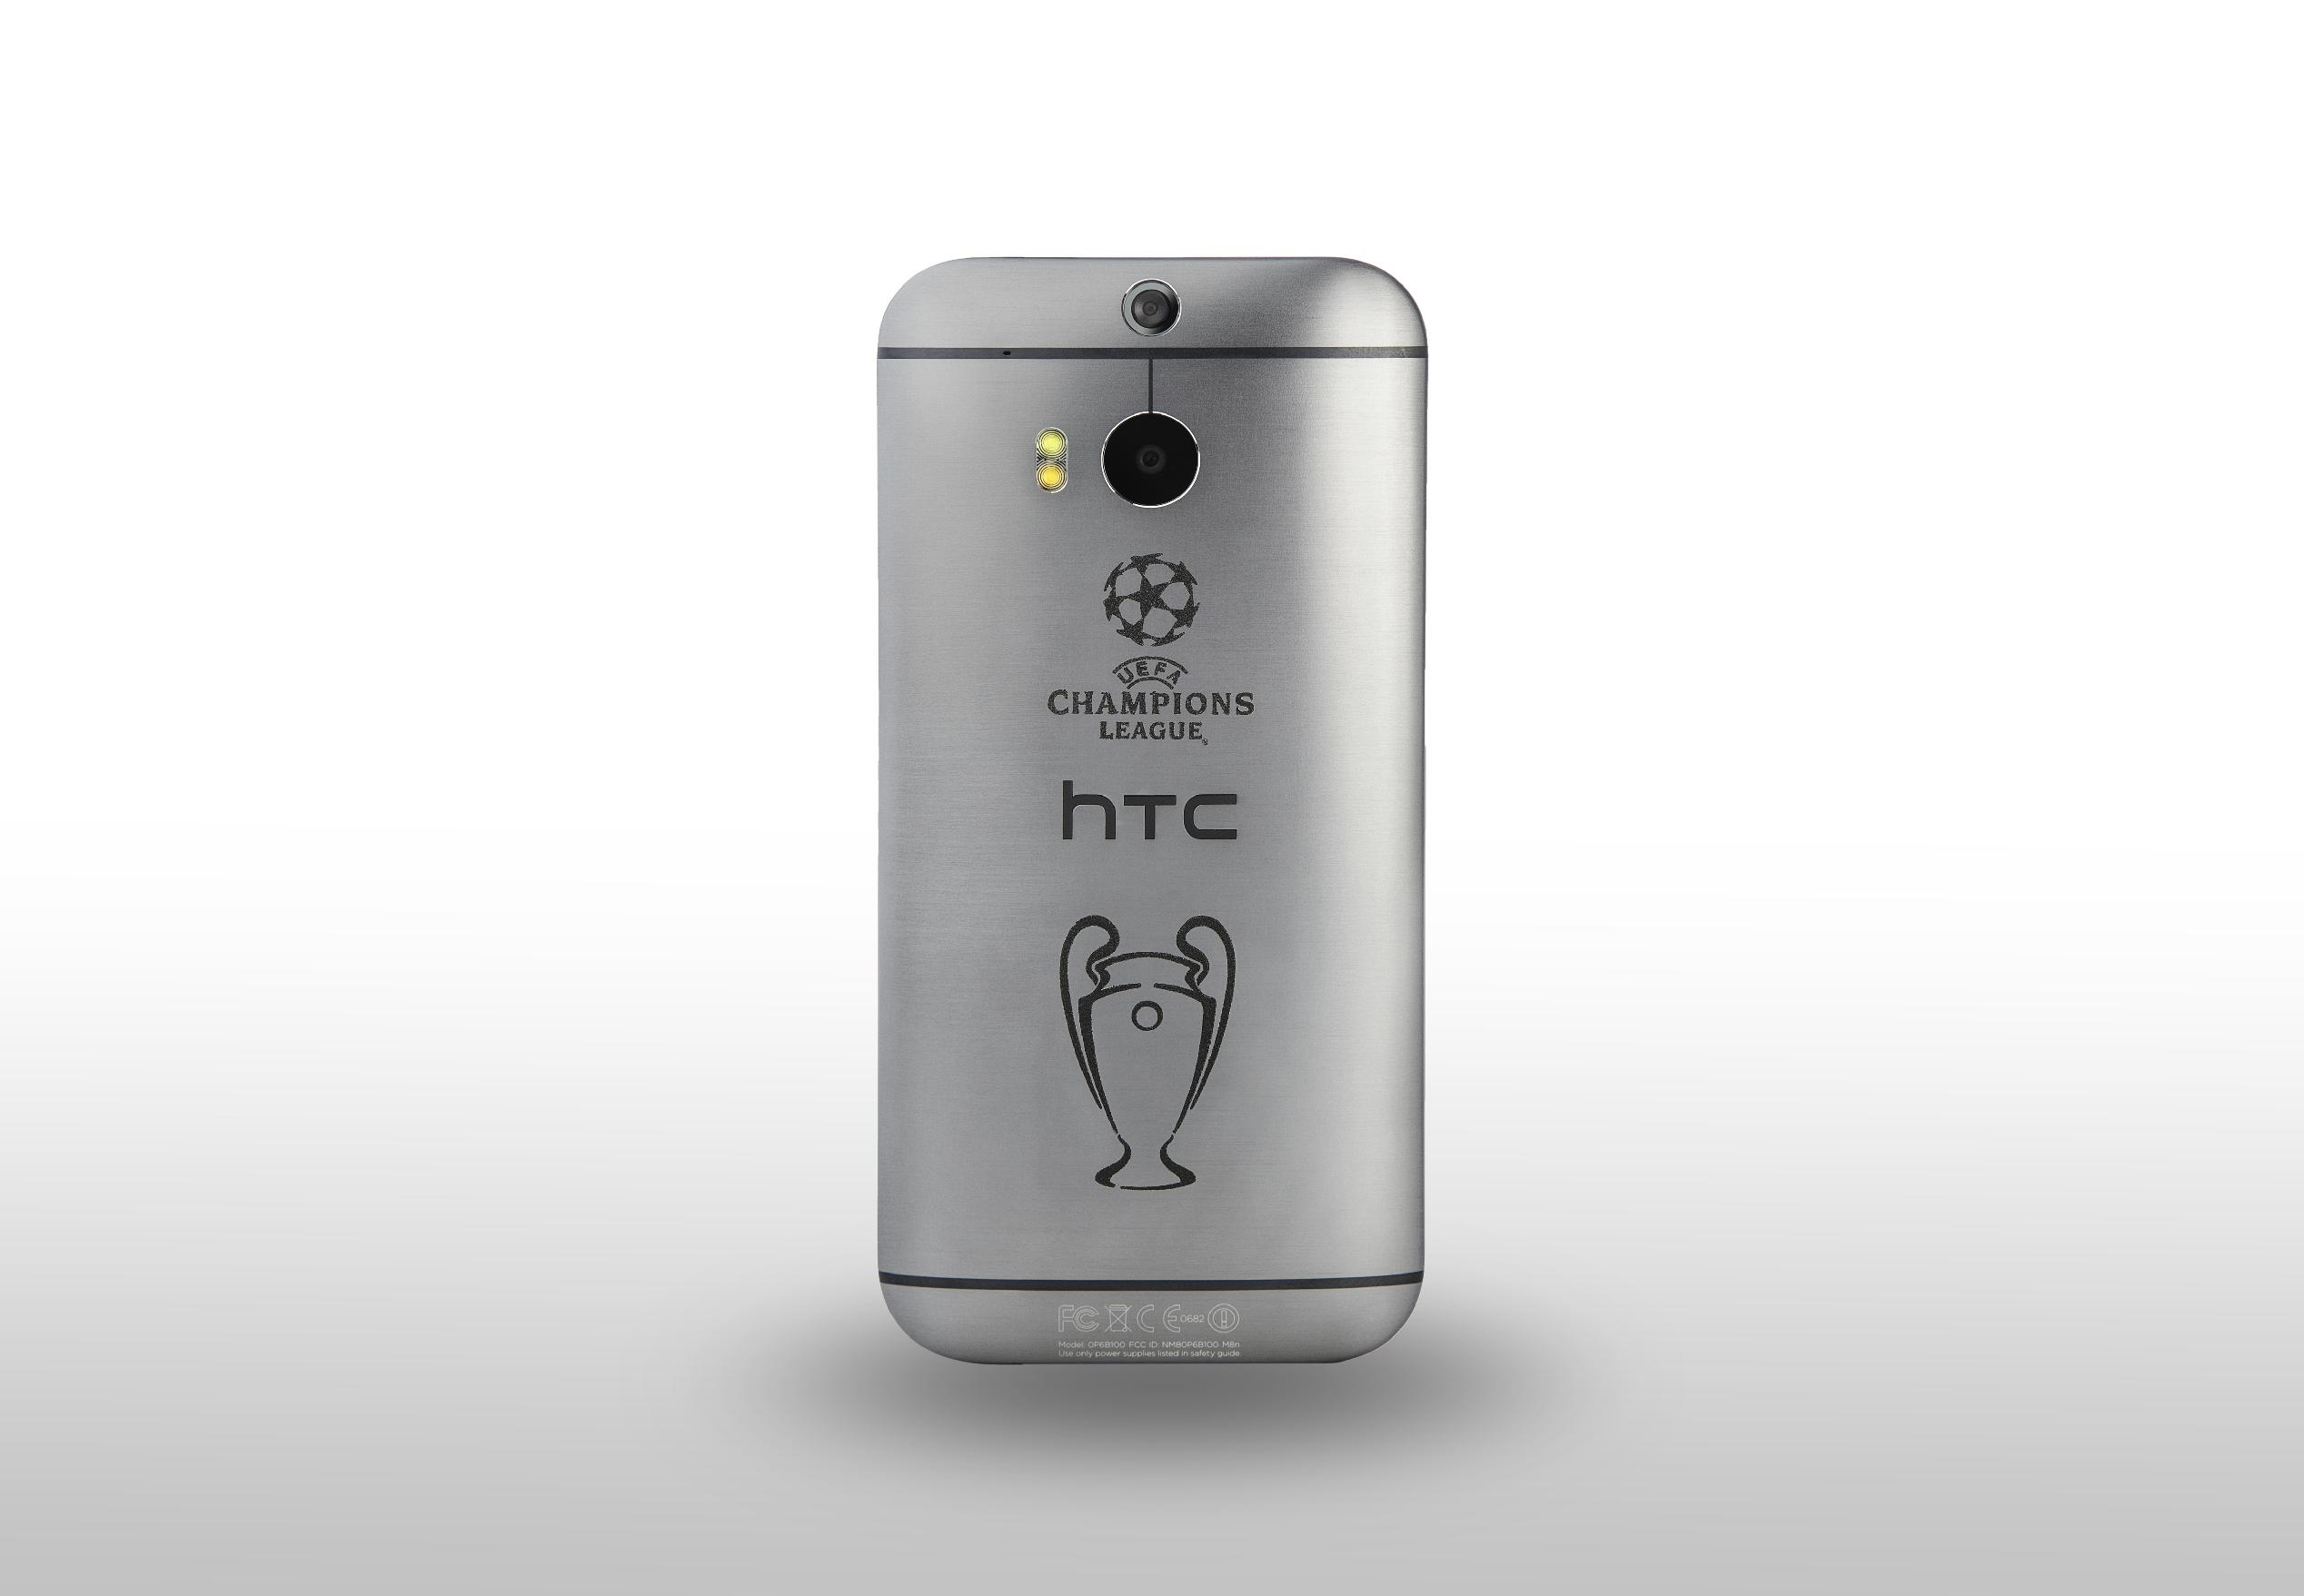 HTC One (M8) gets Champions League collector's edition